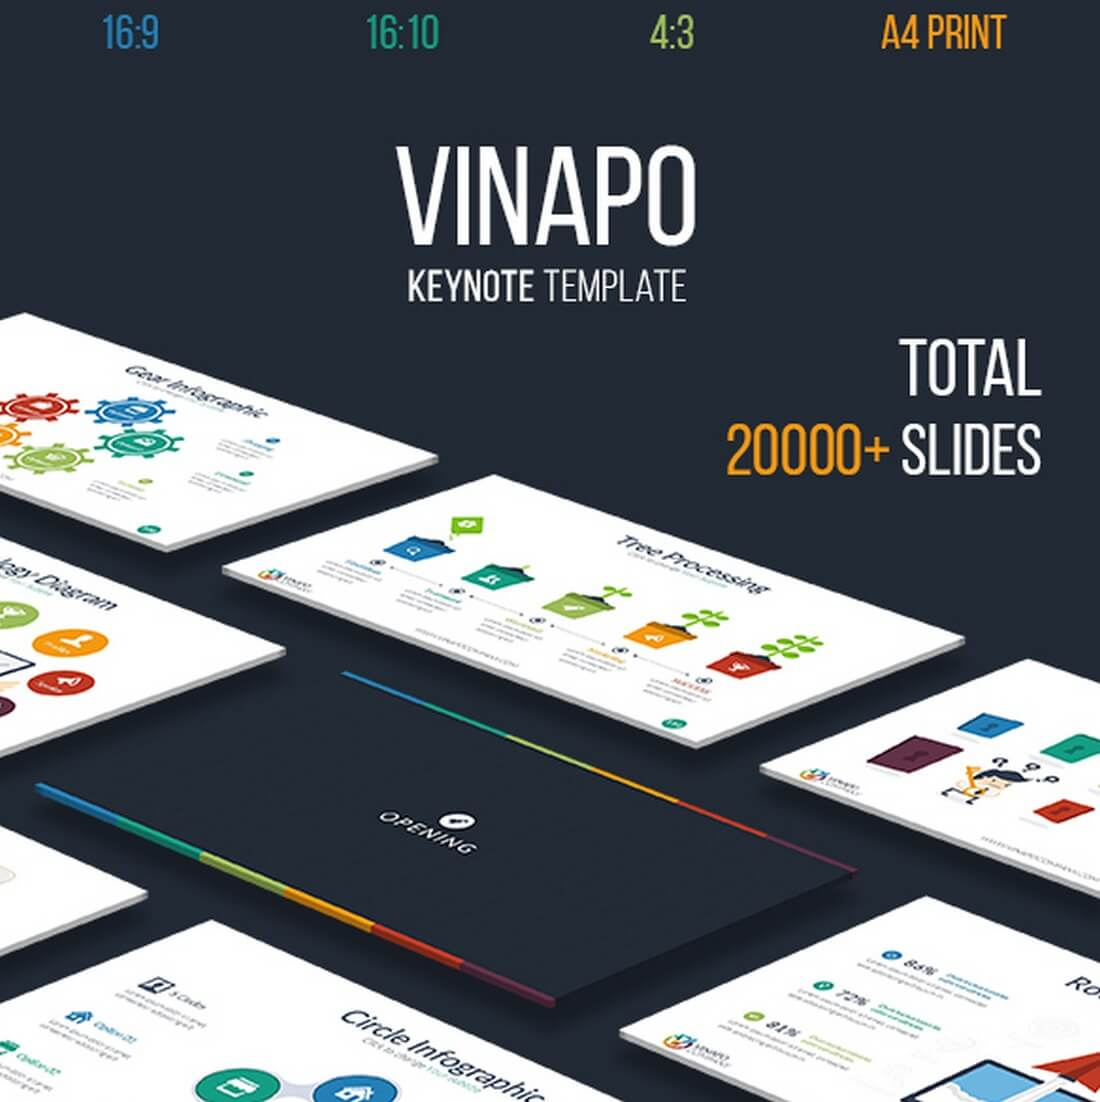 vinapo 30+ Best Keynote Templates of 2018 design tips